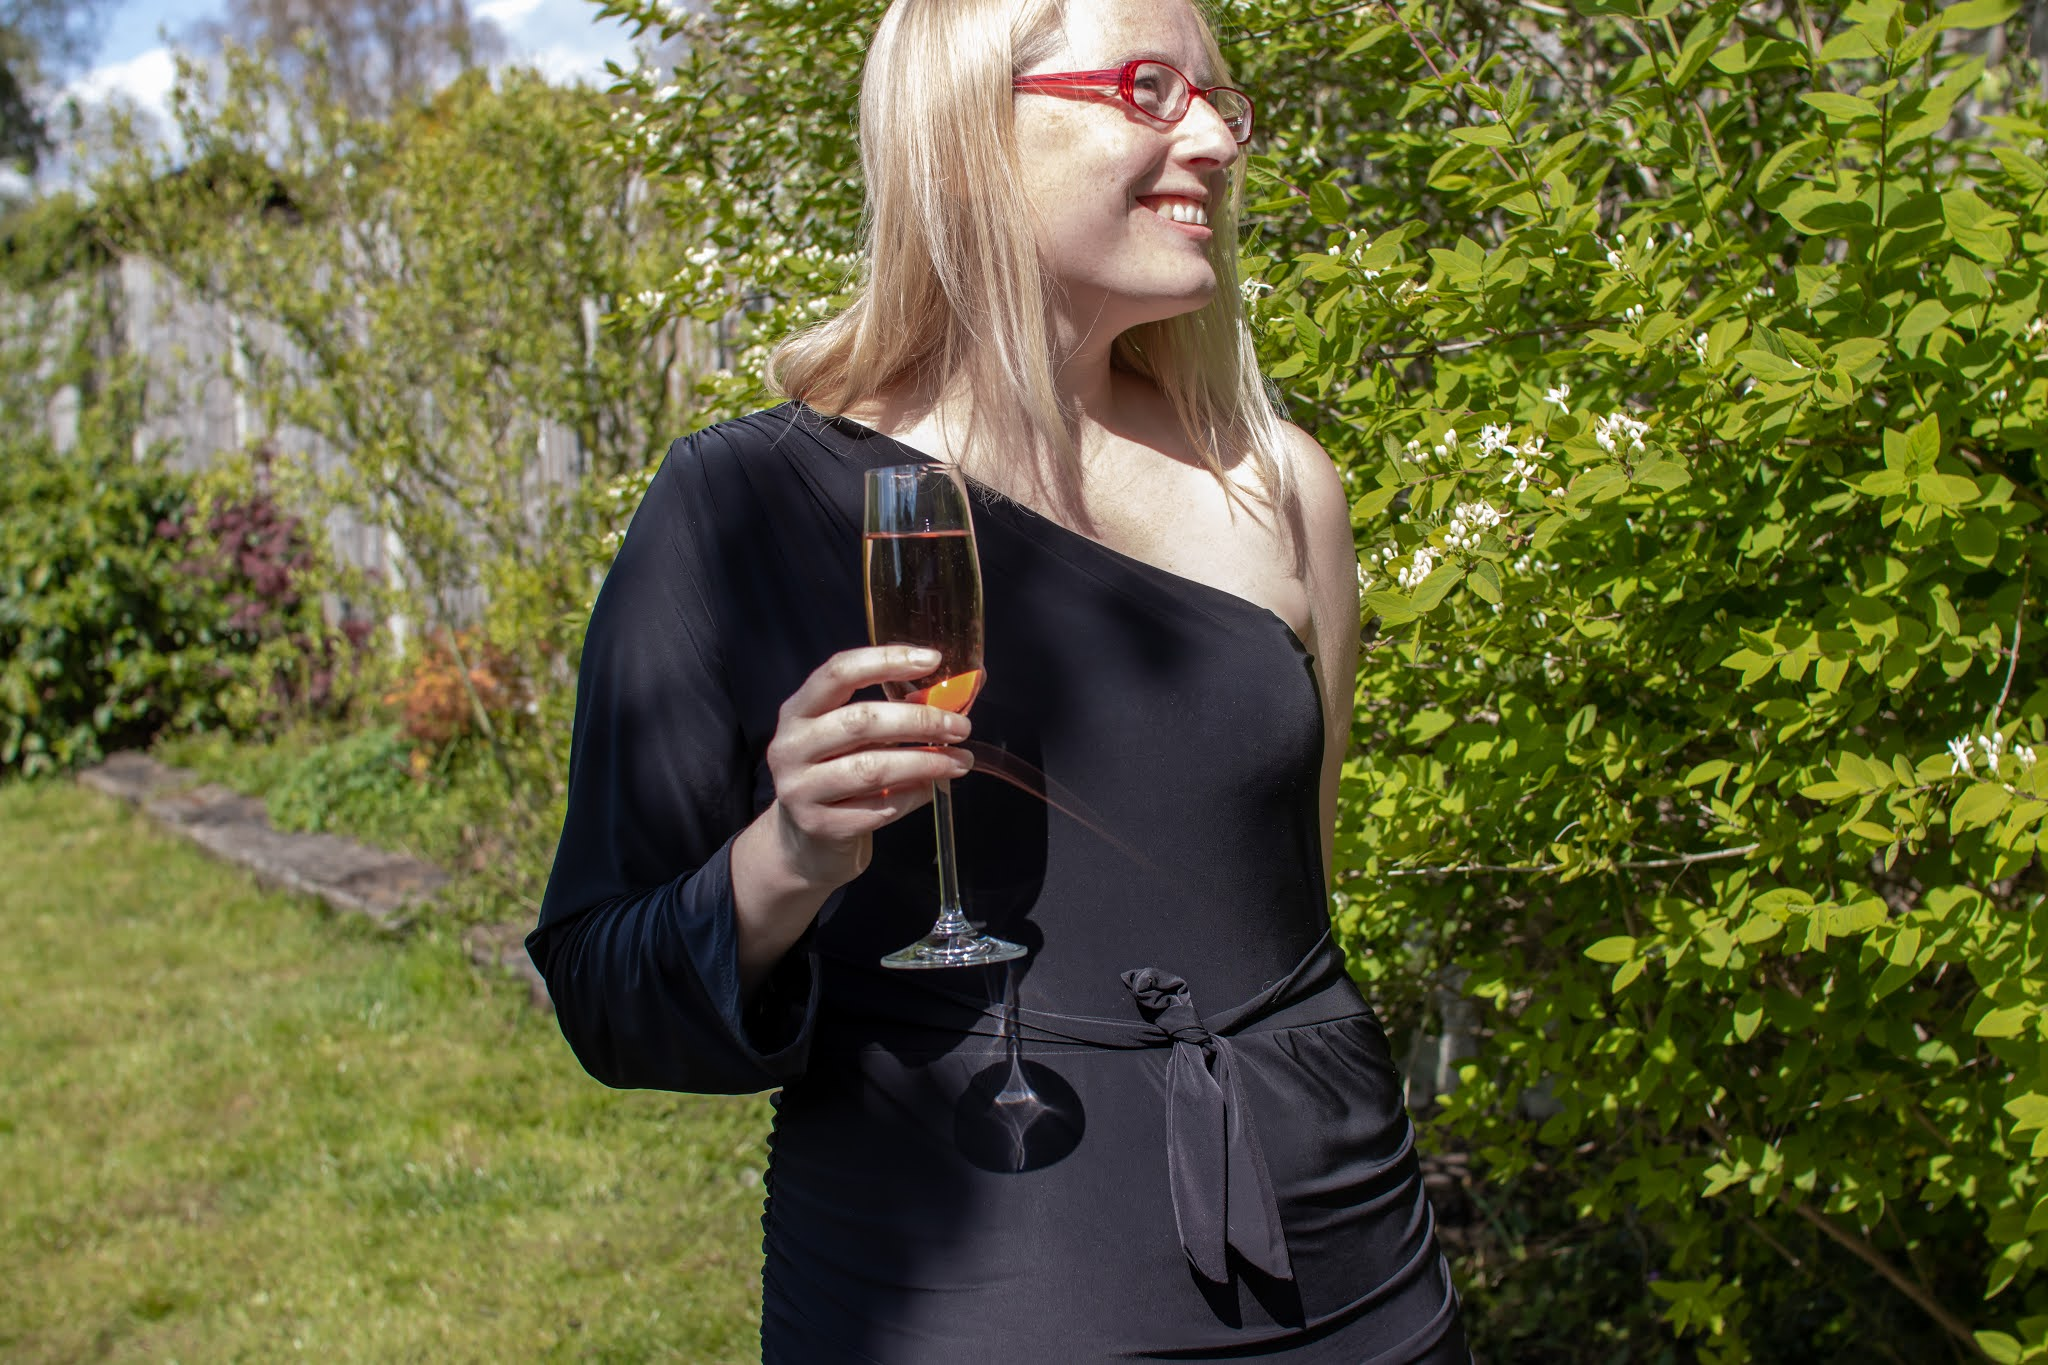 Me in a garden wearing a posh frock and drinking pink champagne